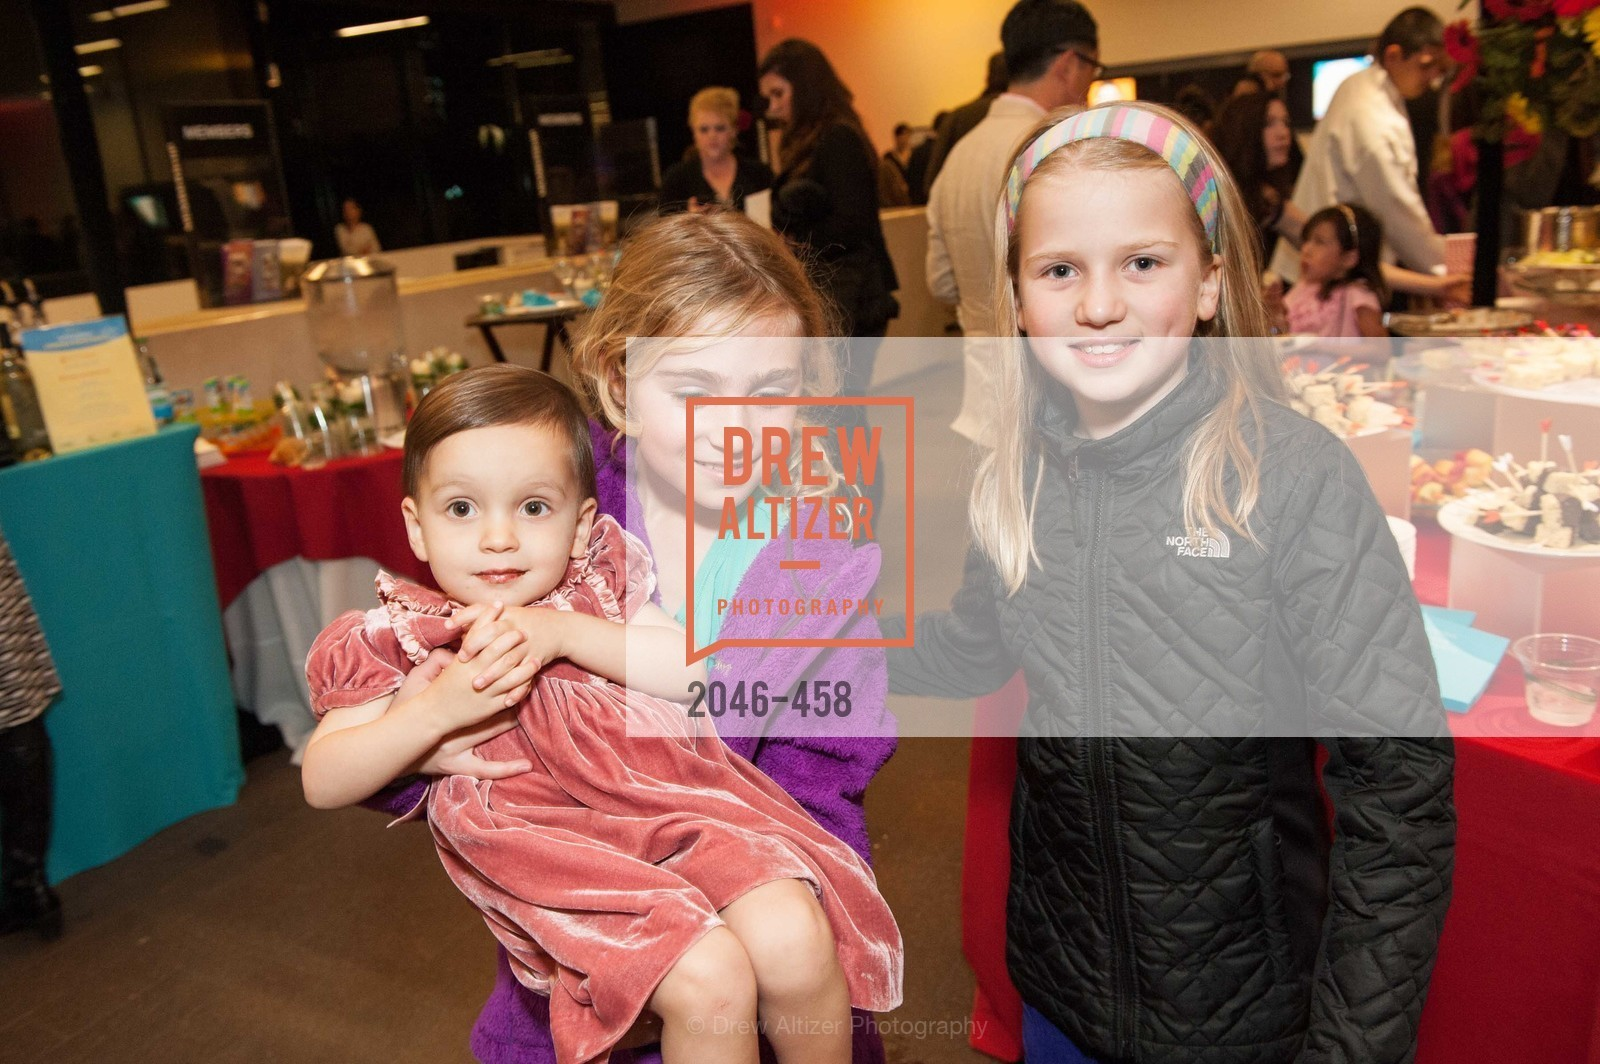 Nina Gruber, Mia Weiss, Maddie Shakoori, Wade McKnight, DE YOUNGSTERS A Bigger Family Party, US. US, January 10th, 2014,Drew Altizer, Drew Altizer Photography, full-service agency, private events, San Francisco photographer, photographer california